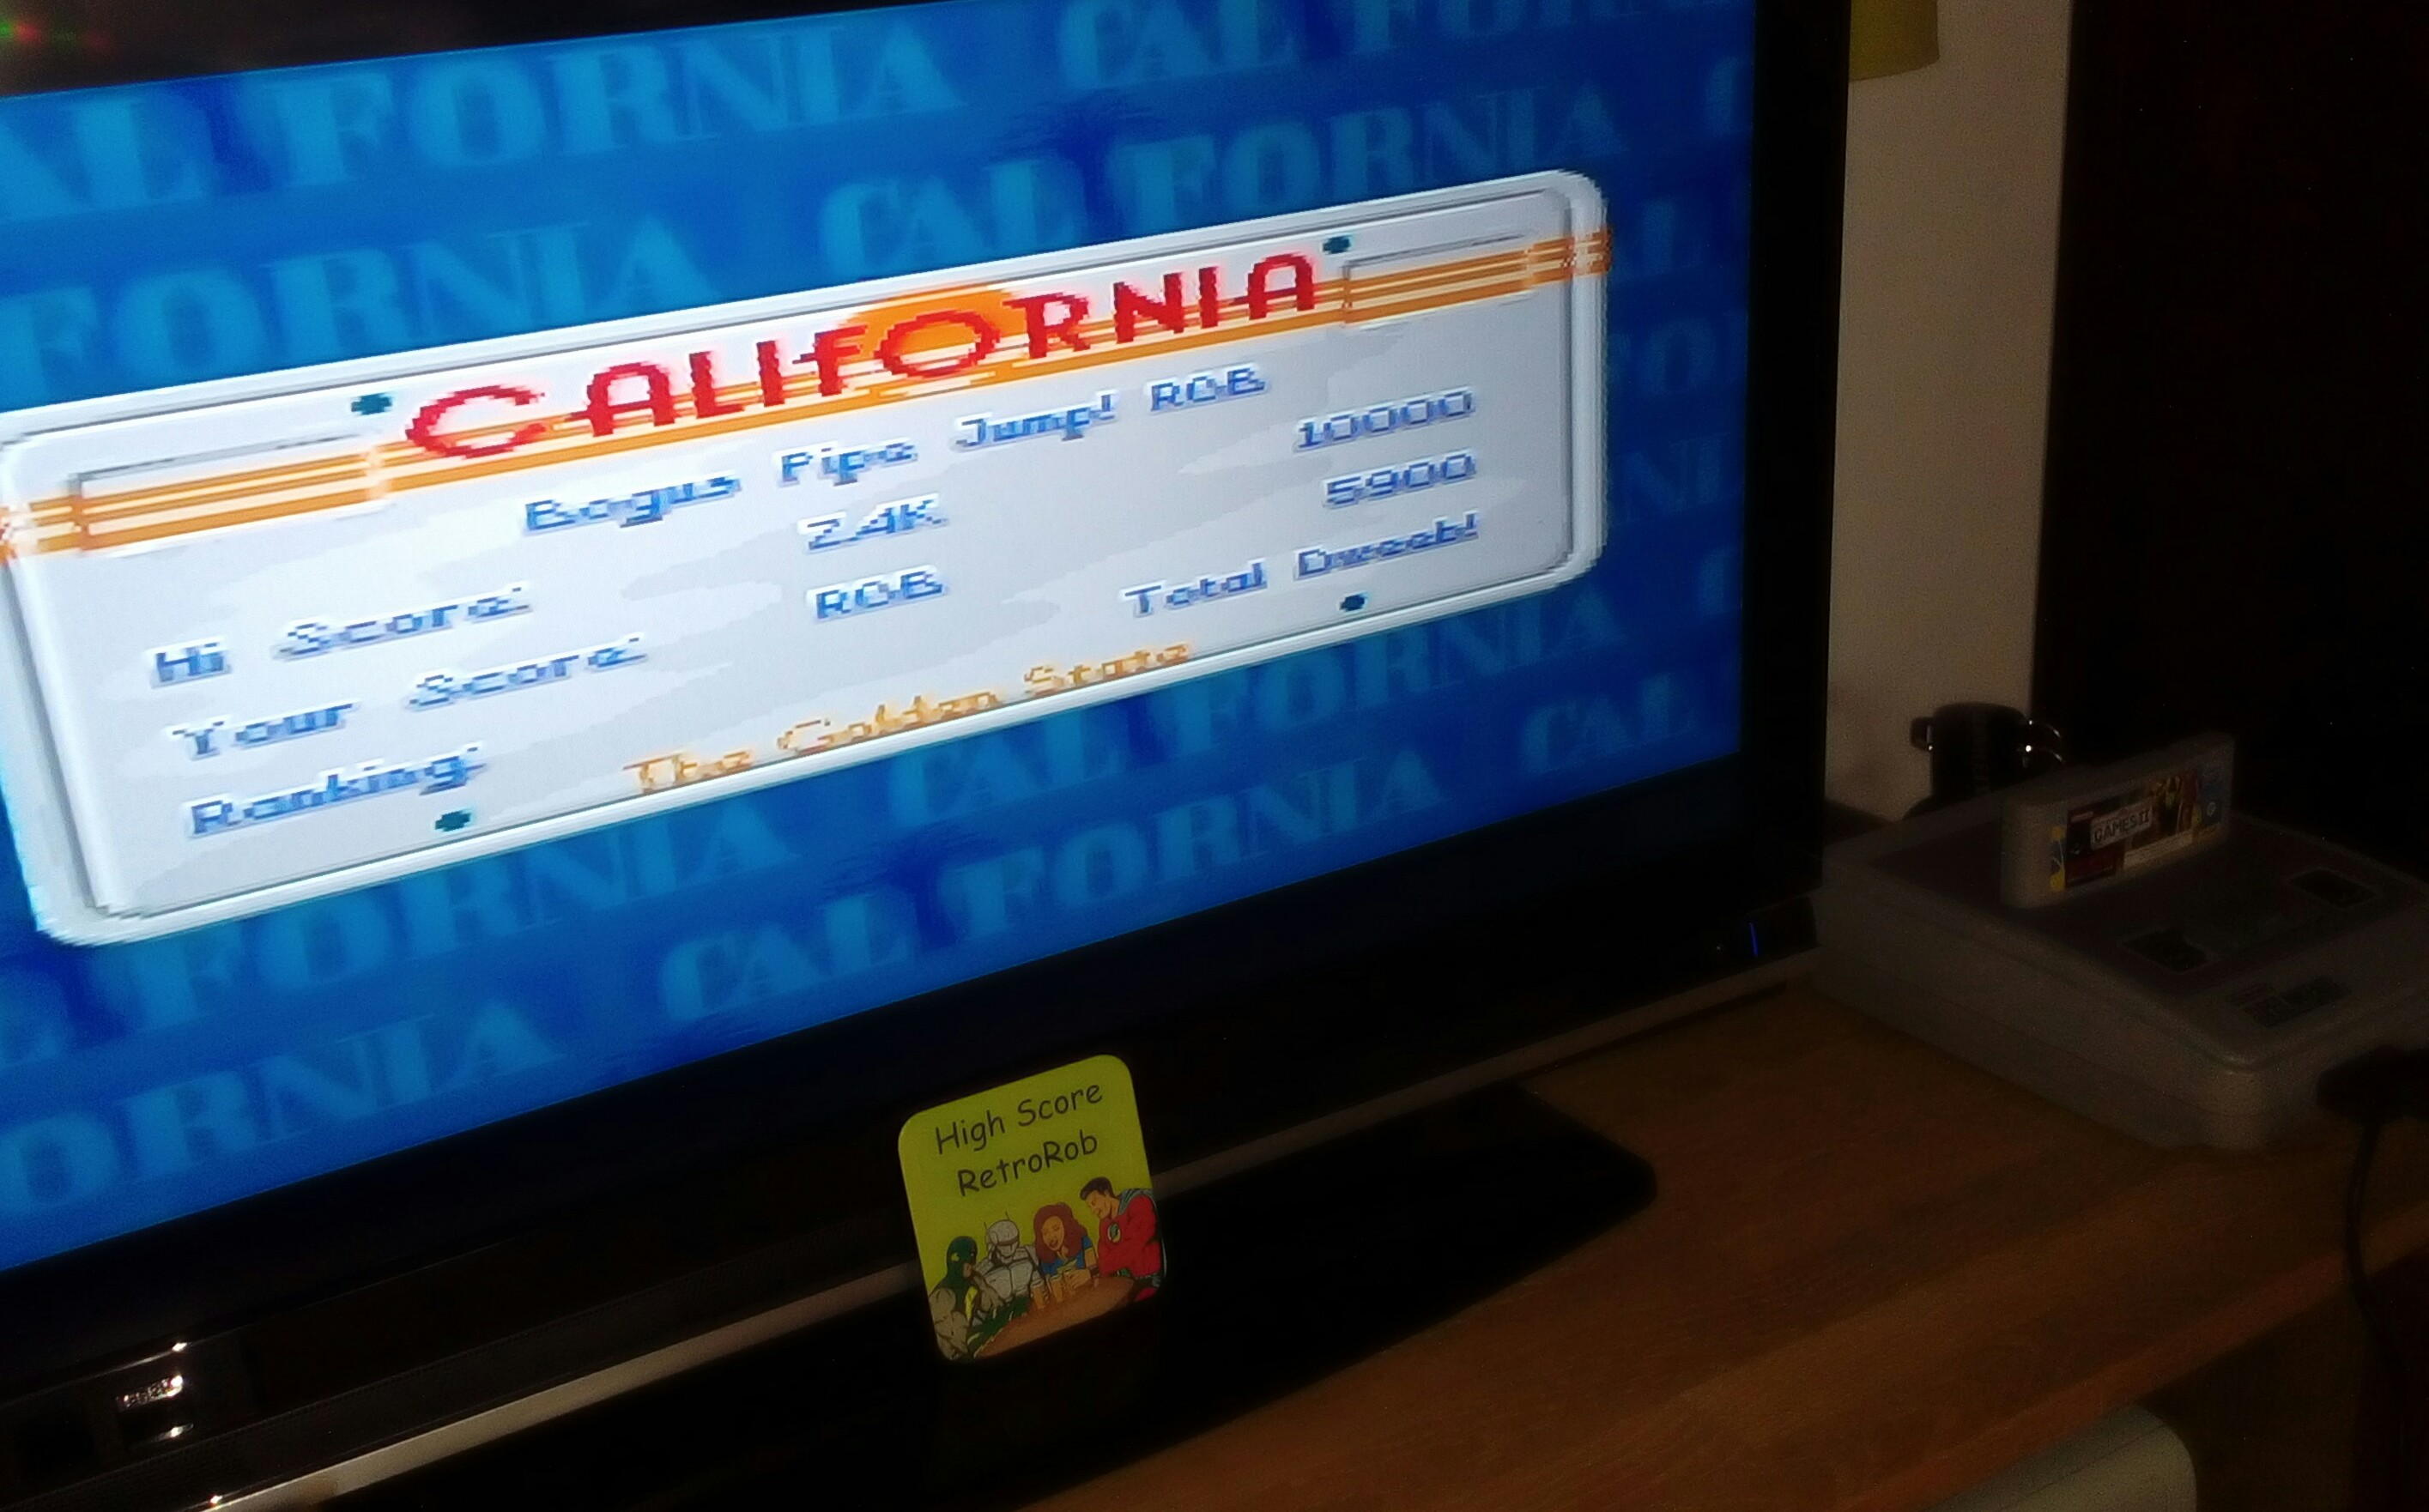 California Games II [Skateboarding] 5,900 points